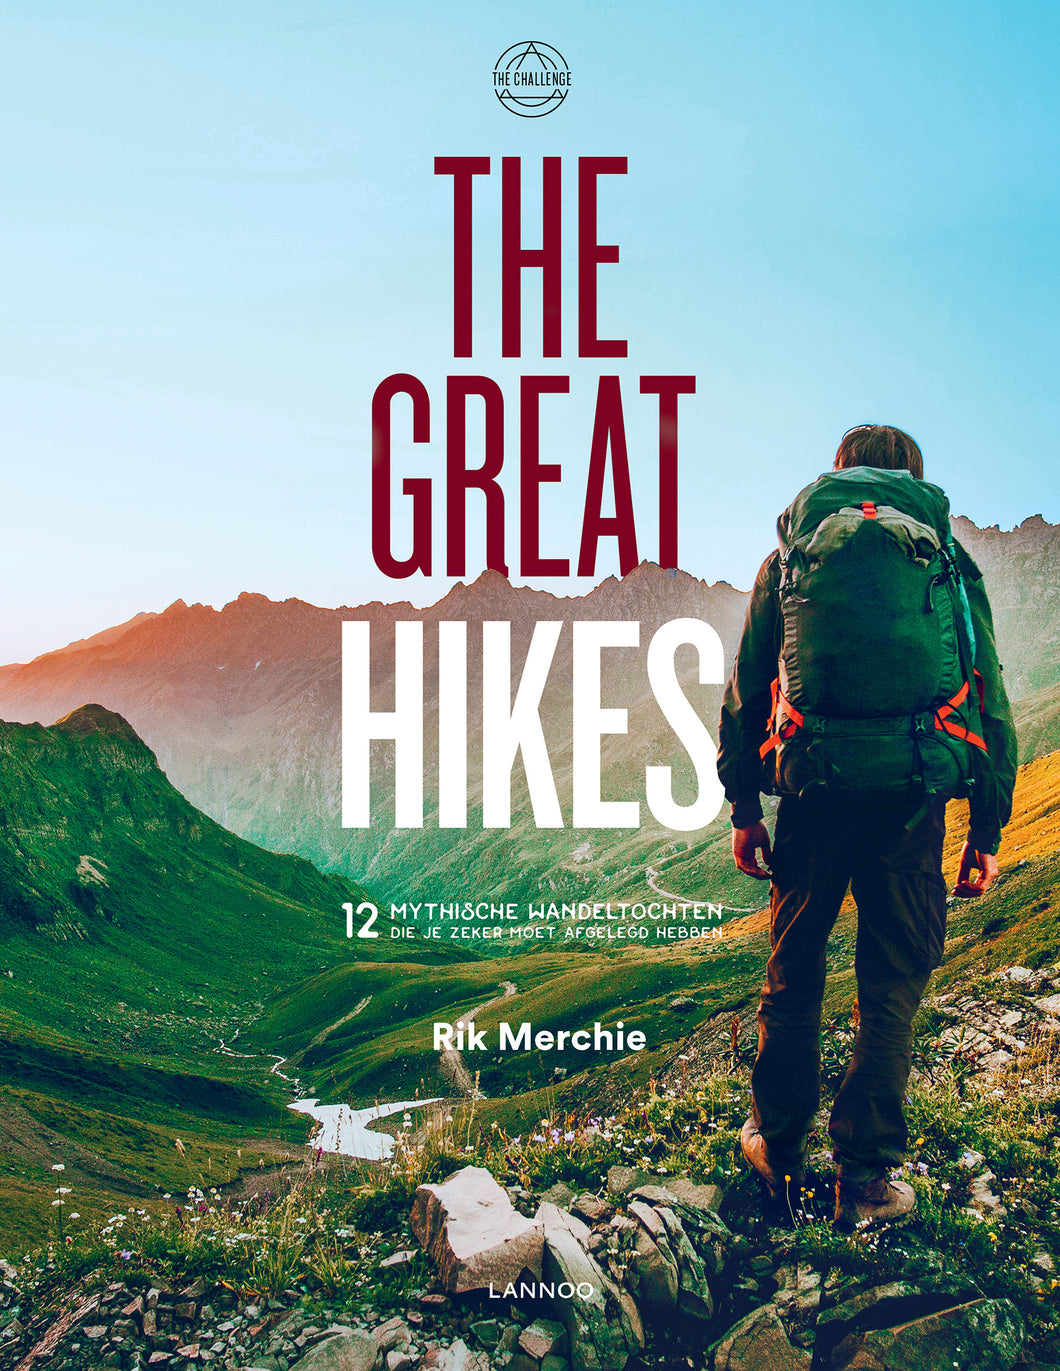 Boek 'The great hikes'